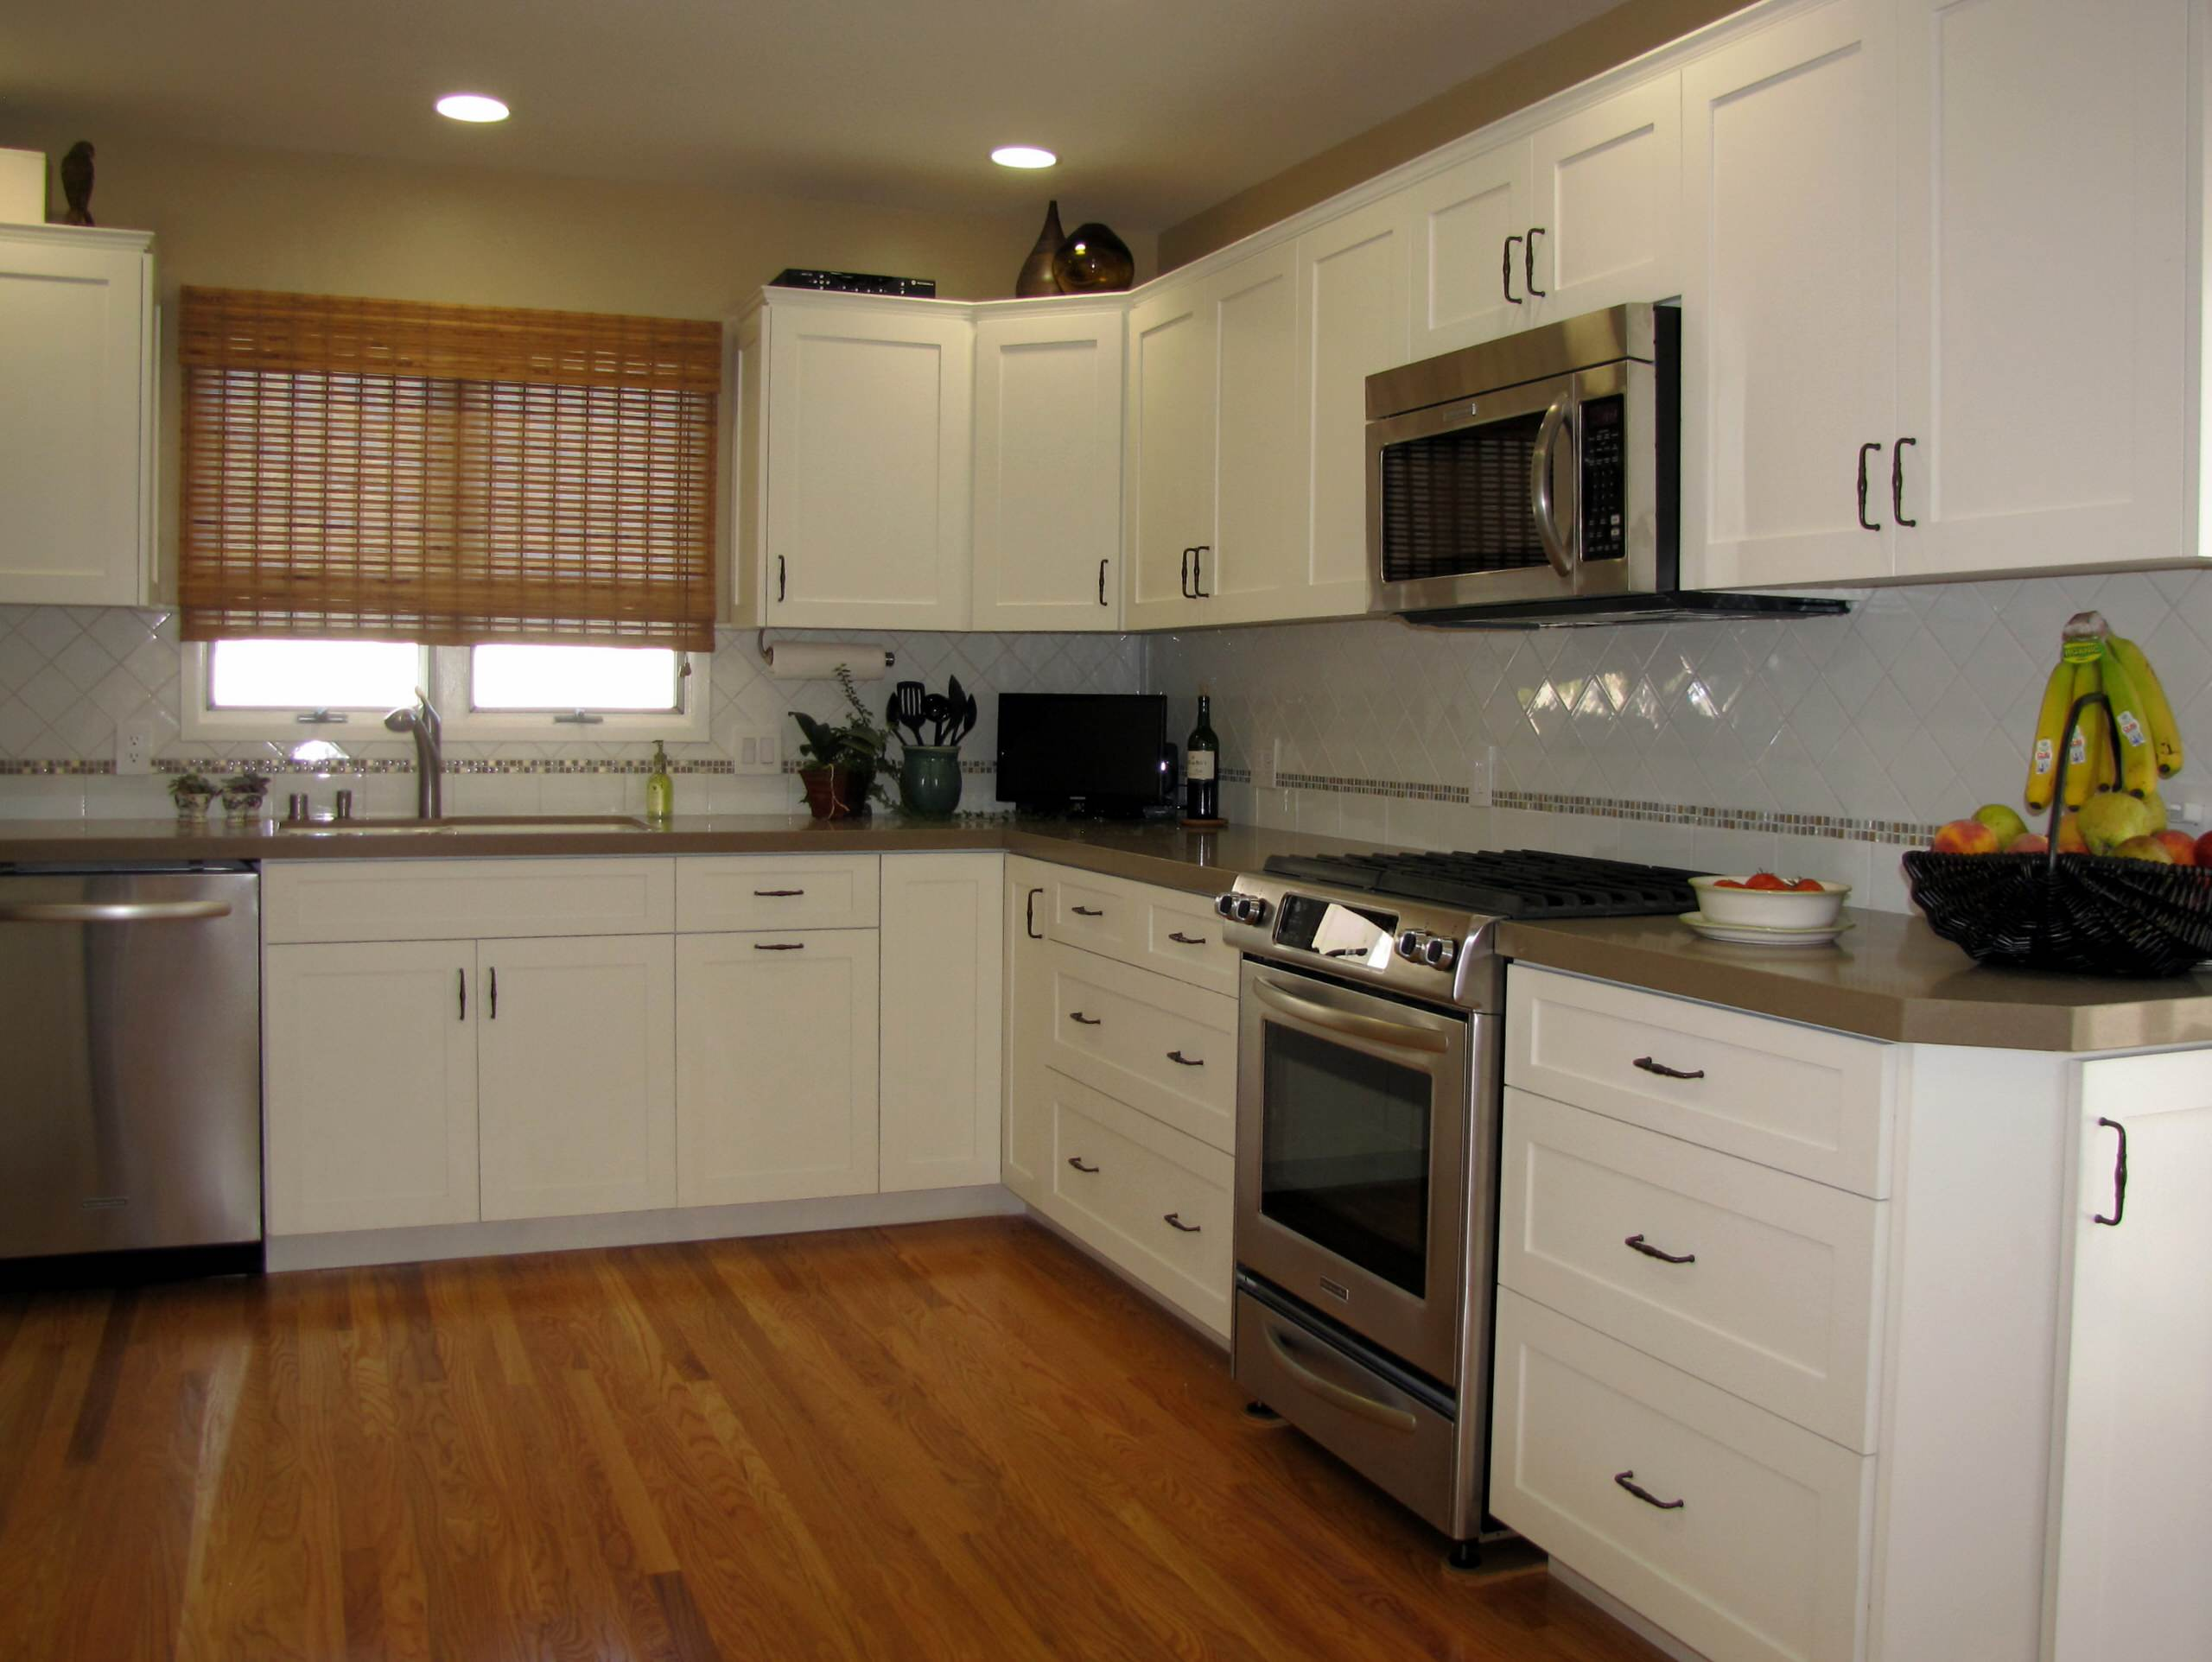 Kitchen and Small Bathroom Remodel